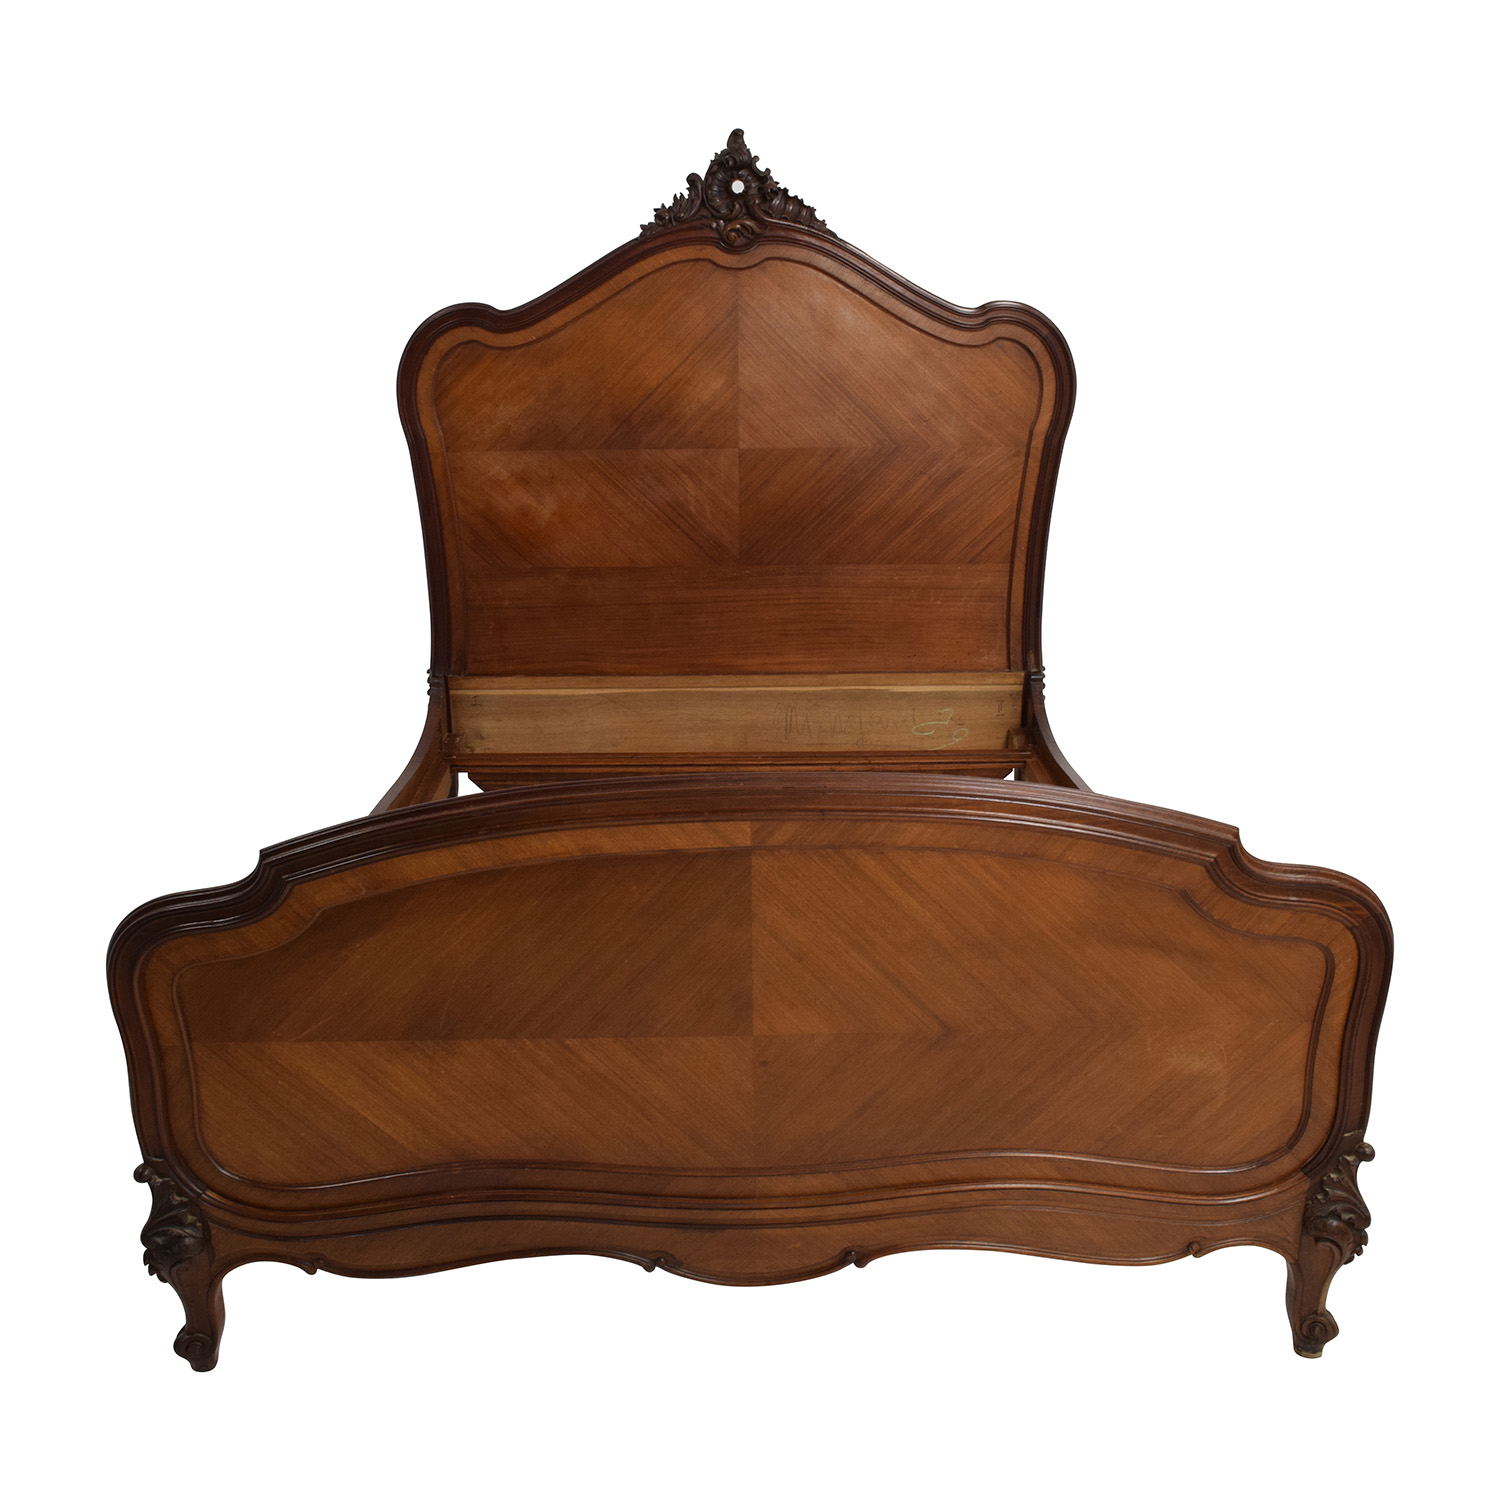 ABC Carpet & Home Mahogany Victorian Style Bed Frame / Bed Frames